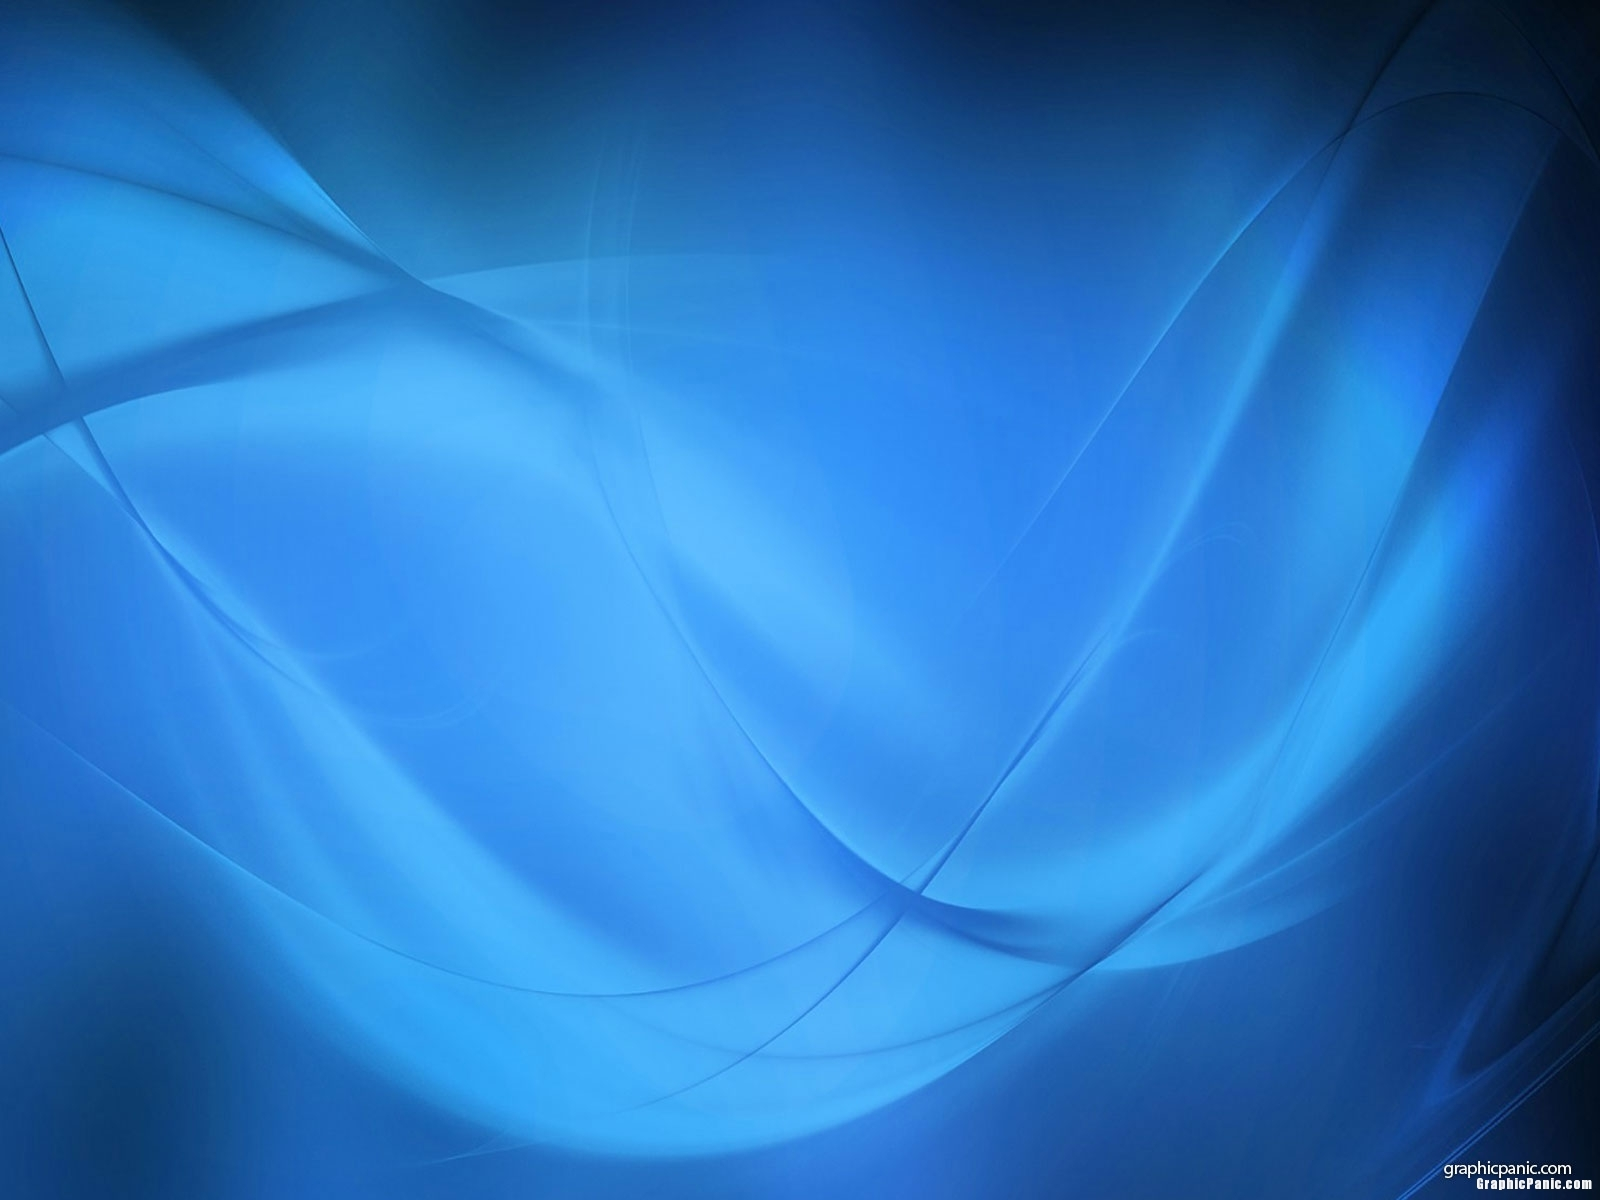 elegant blue hd background